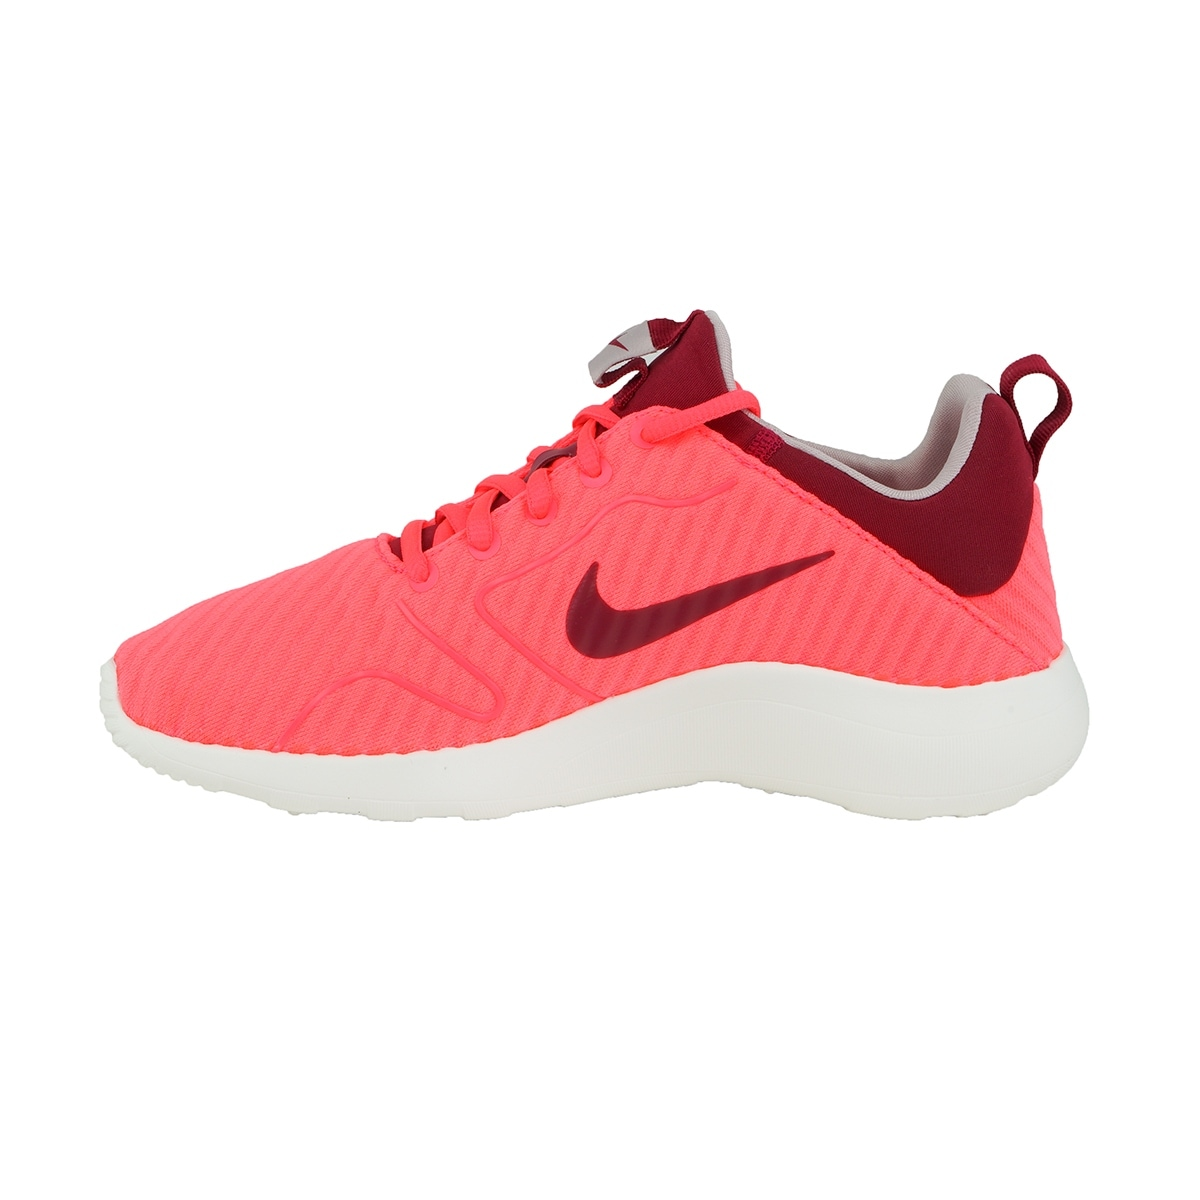 buy popular f84bf 041d3 Shop Nike Women s Kaishi 2.0 SE Running Shoes - Free Shipping On Orders  Over  45 - Overstock - 25779815